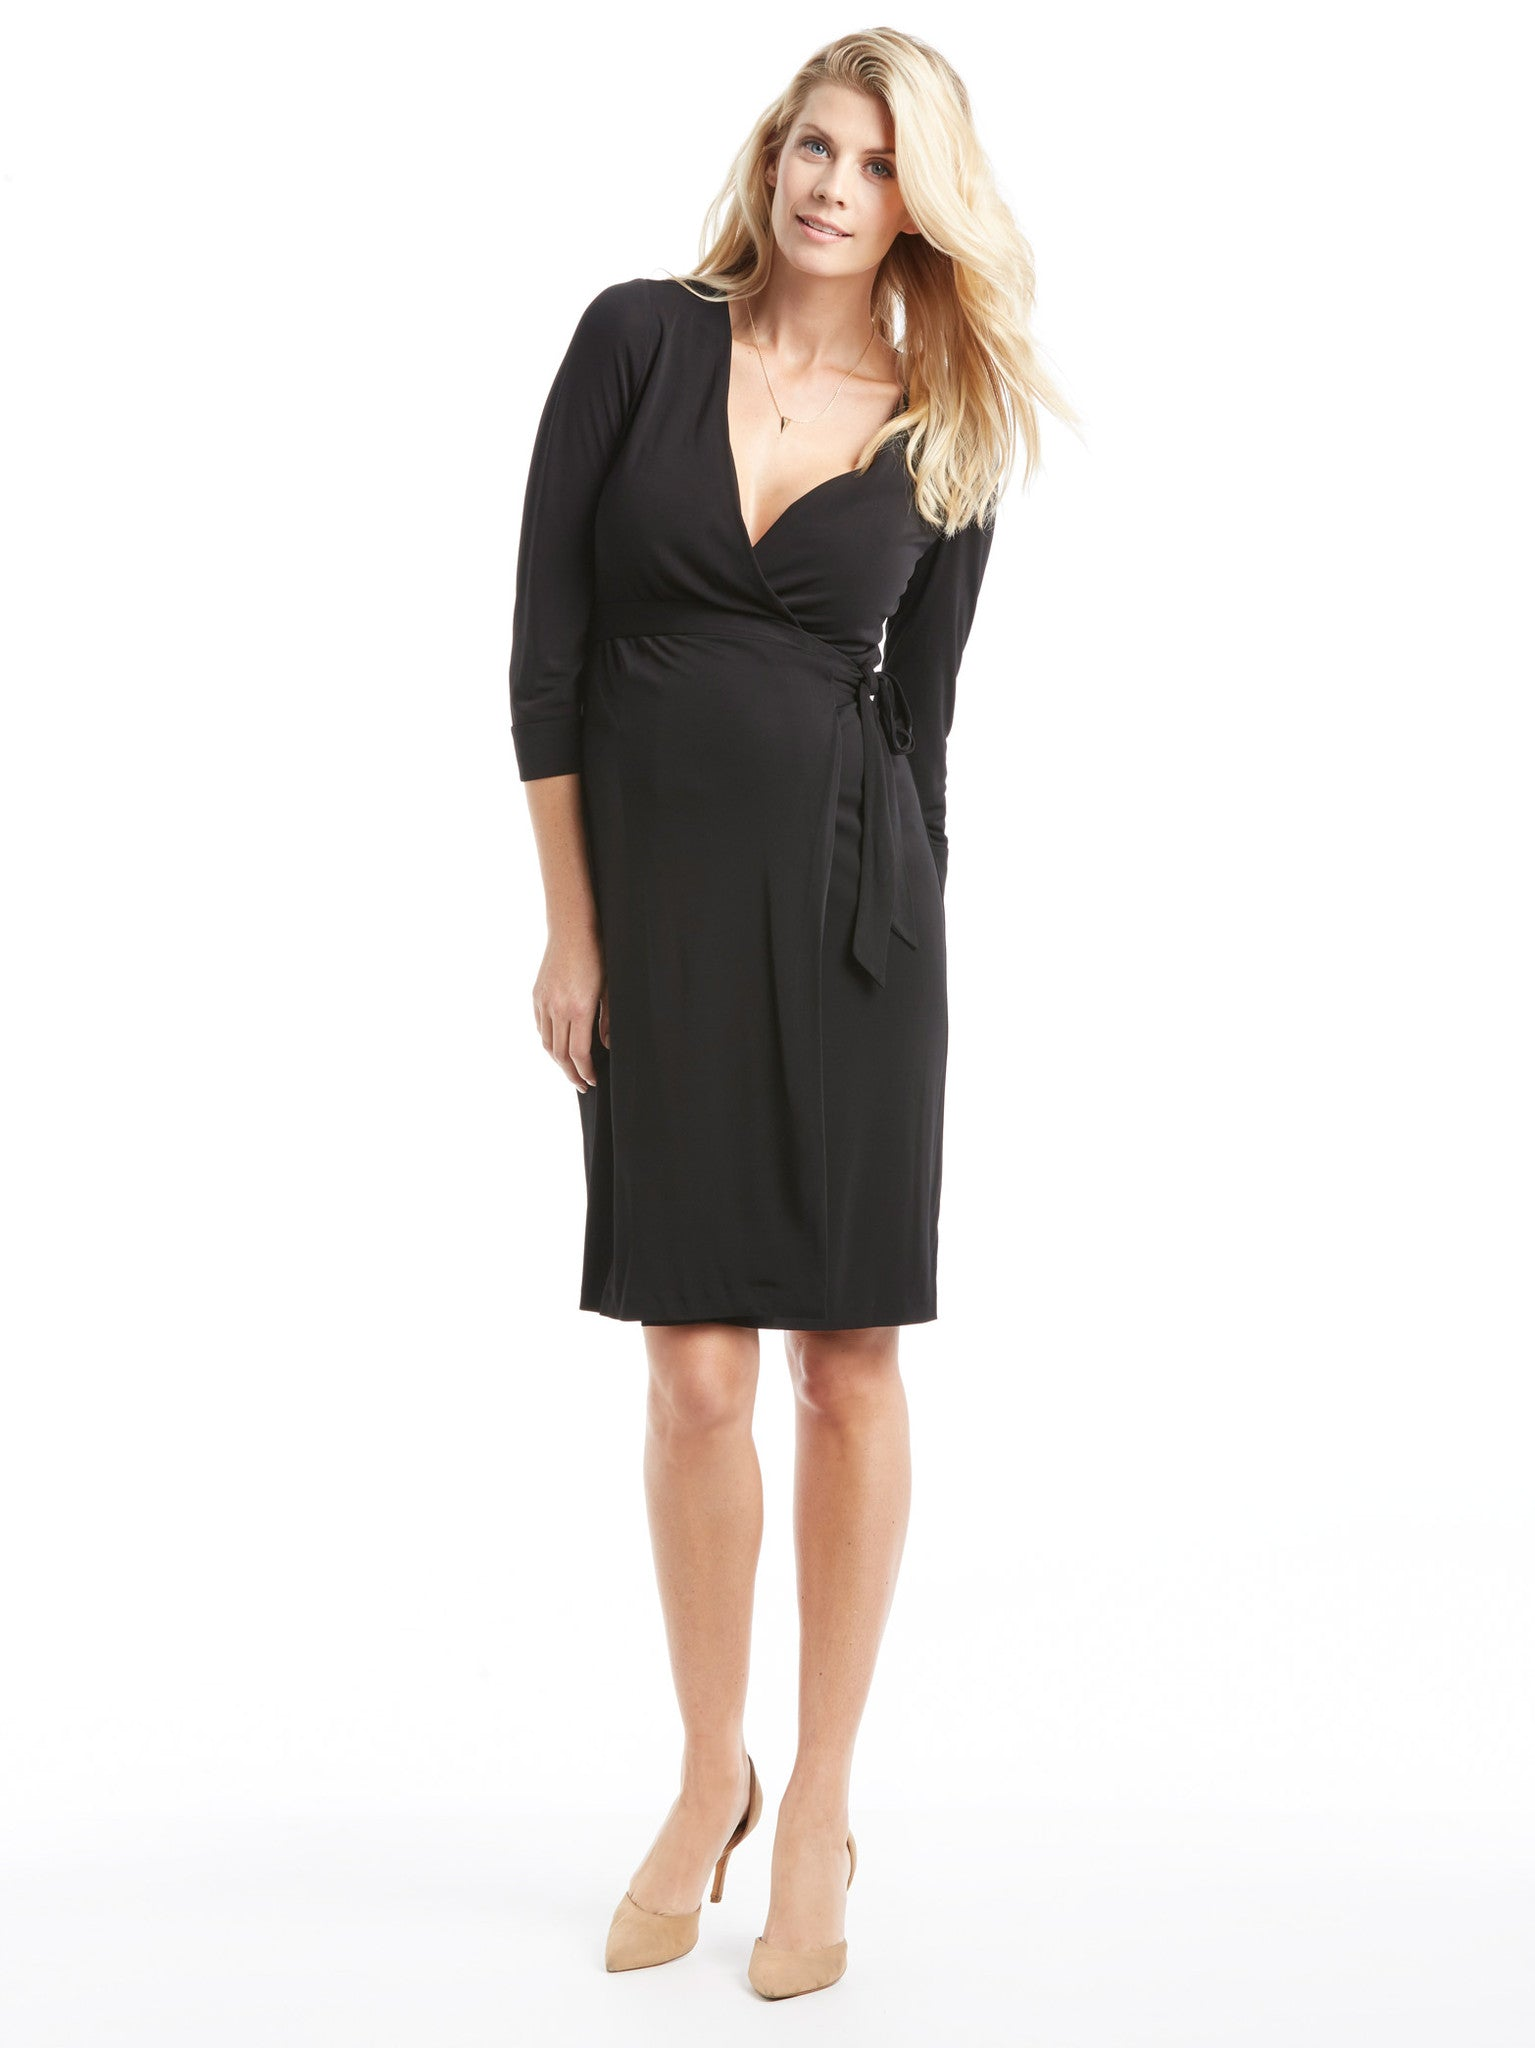 Diane von Furstenberg New Julian Two Dress - Black | TILDEN